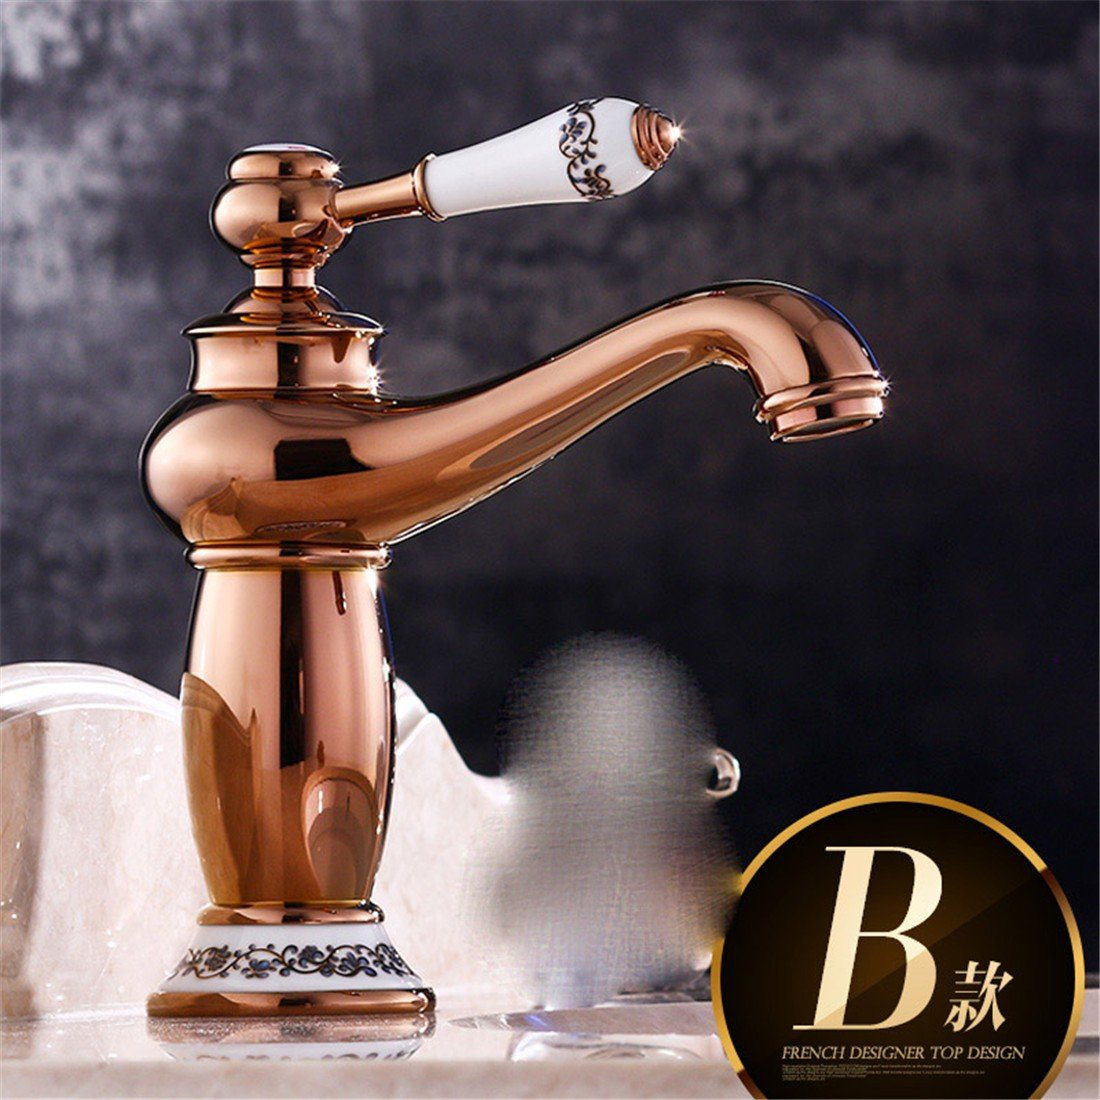 pink gold B Hlluya Professional Sink Mixer Tap Kitchen Faucet Antique basin copper cold water faucet antique porcelain bluee dragon head can be redated, B